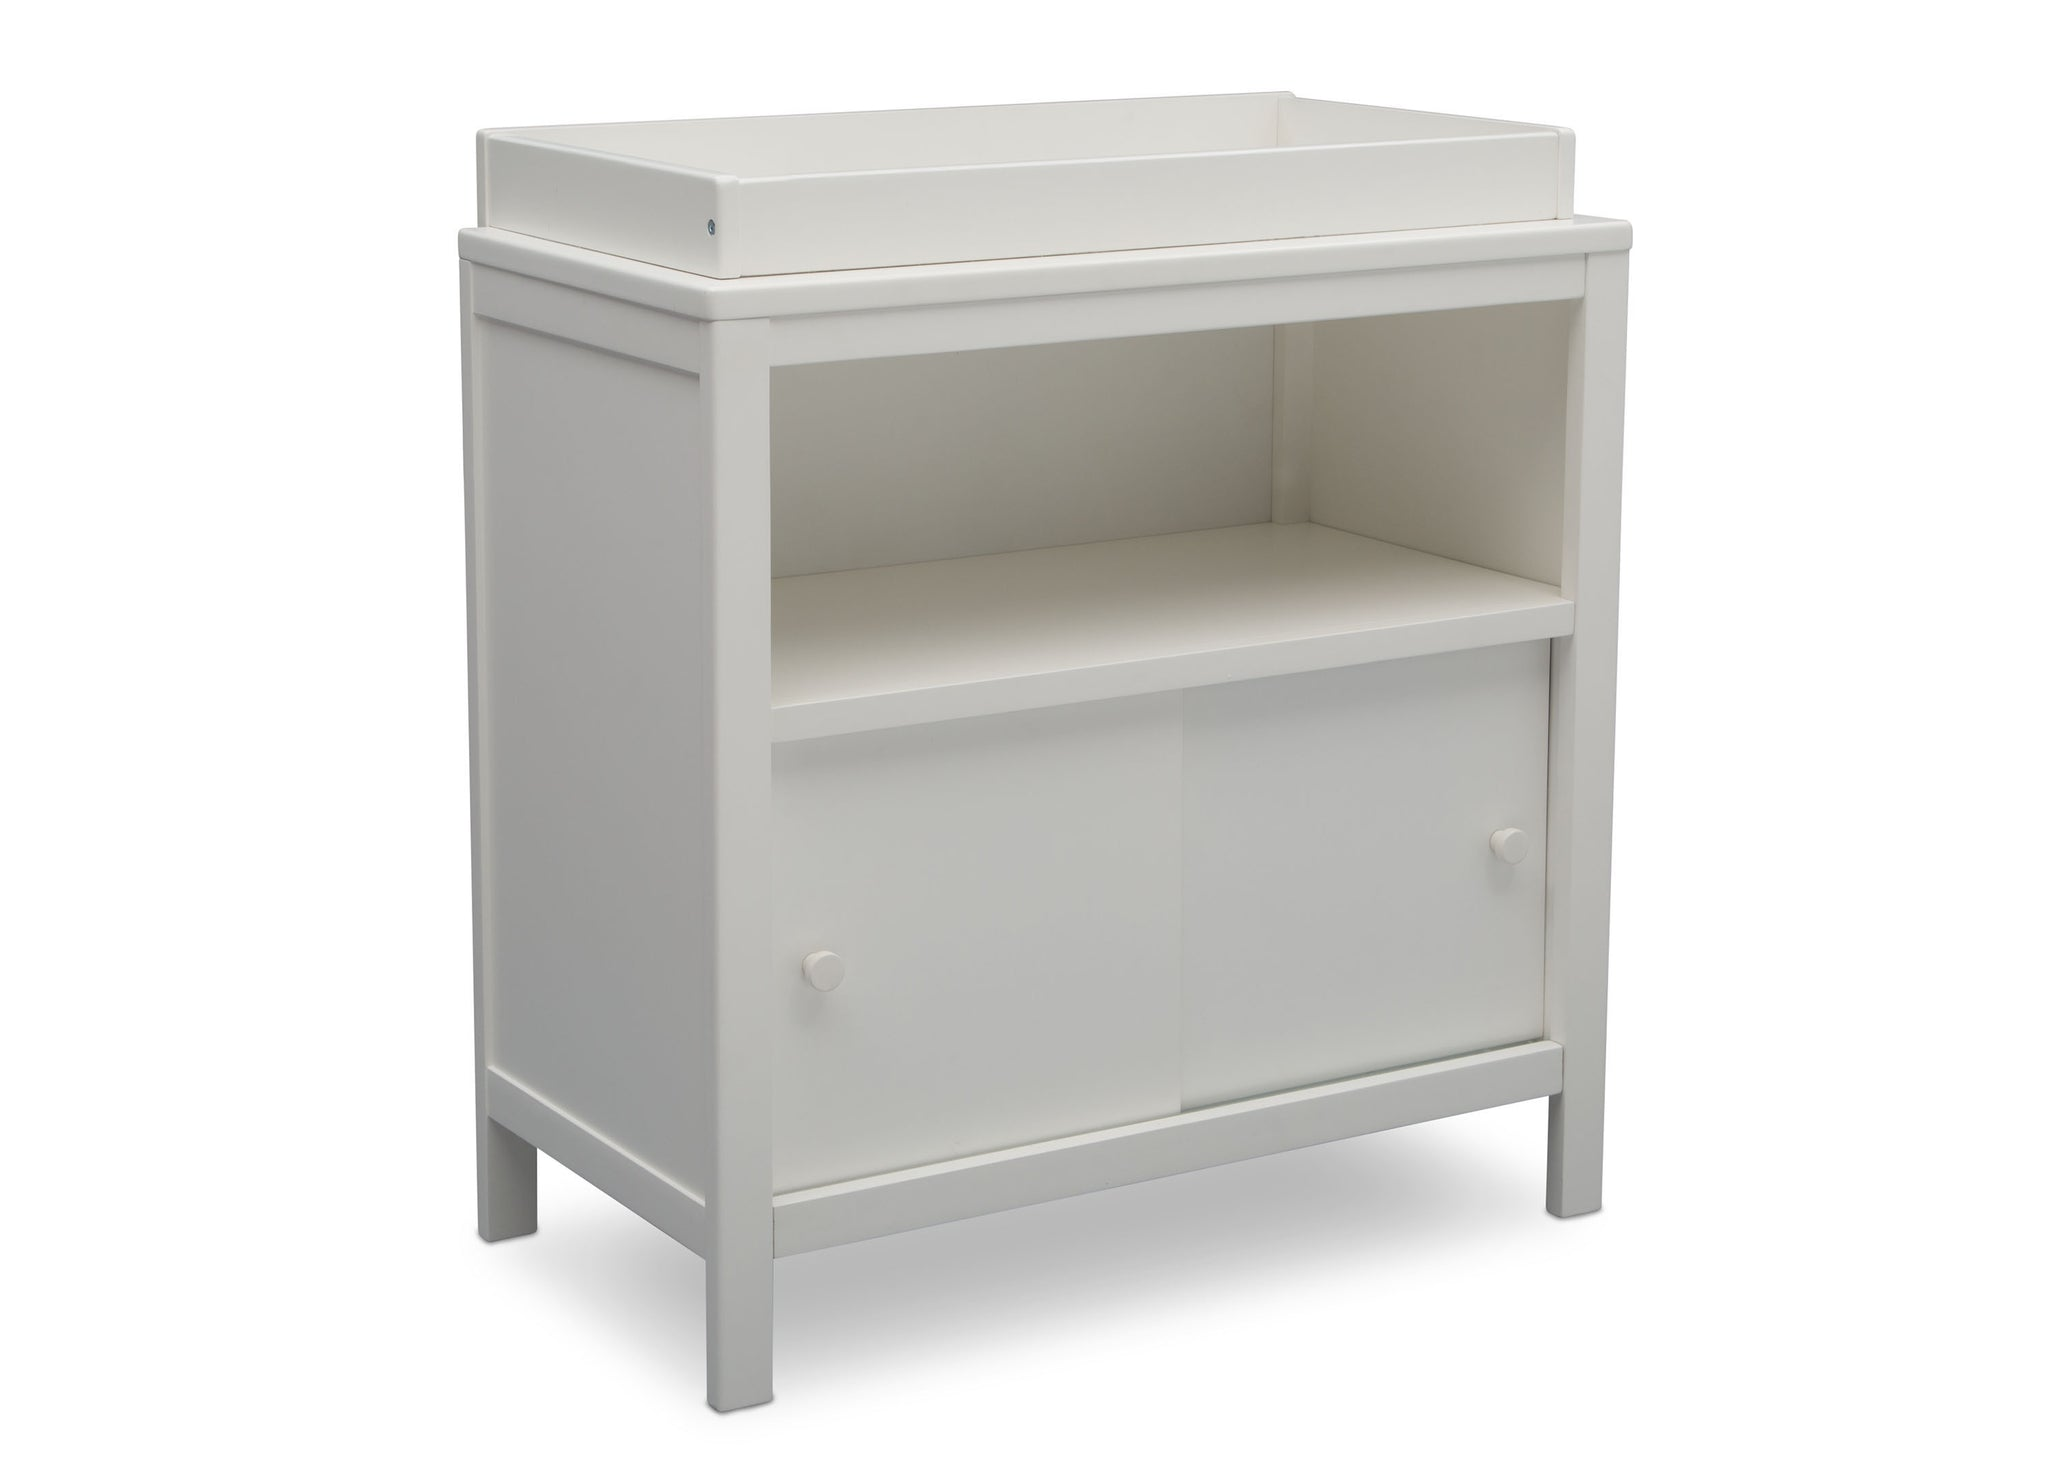 Delta Children Bianca (130) Convertible Changing Unit, side view, c2c